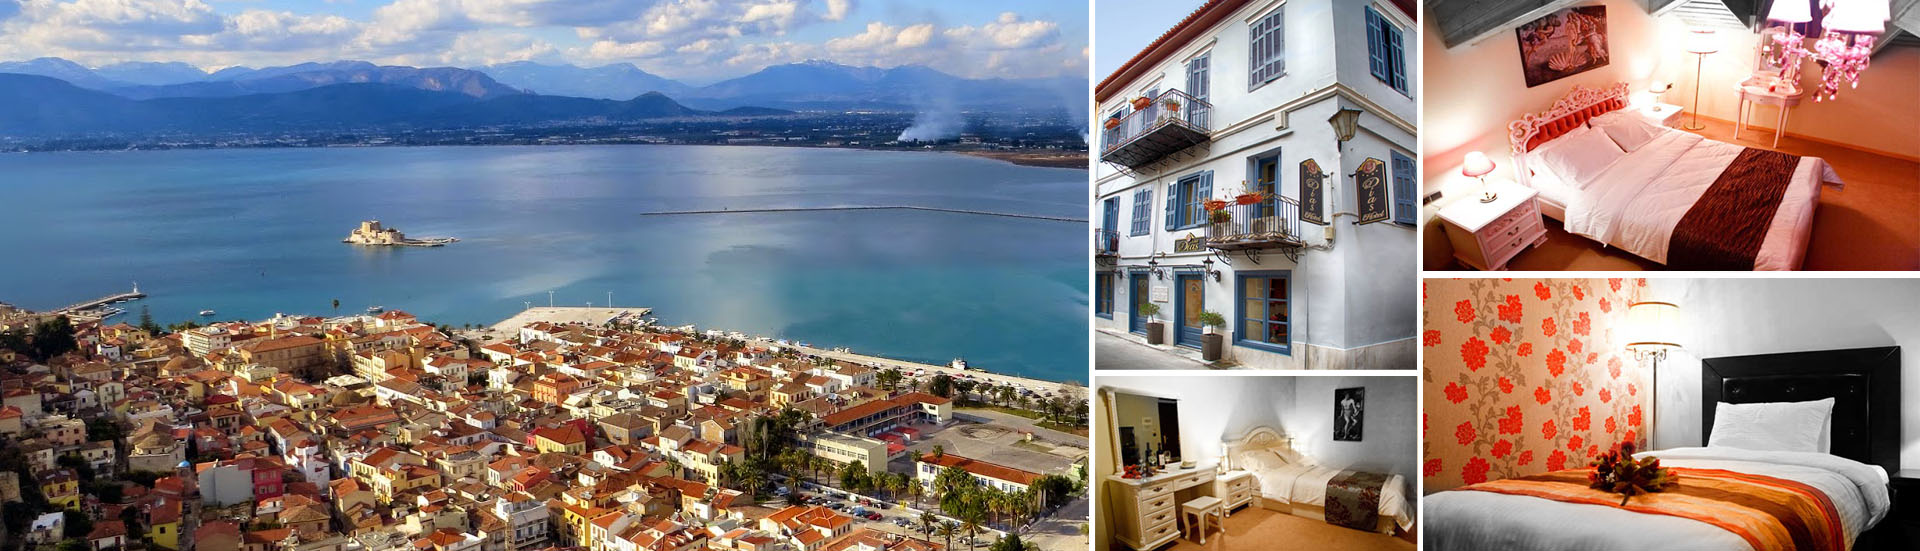 Dias Boutique Hotel in Nafplio - διαμονη ναυπλιο